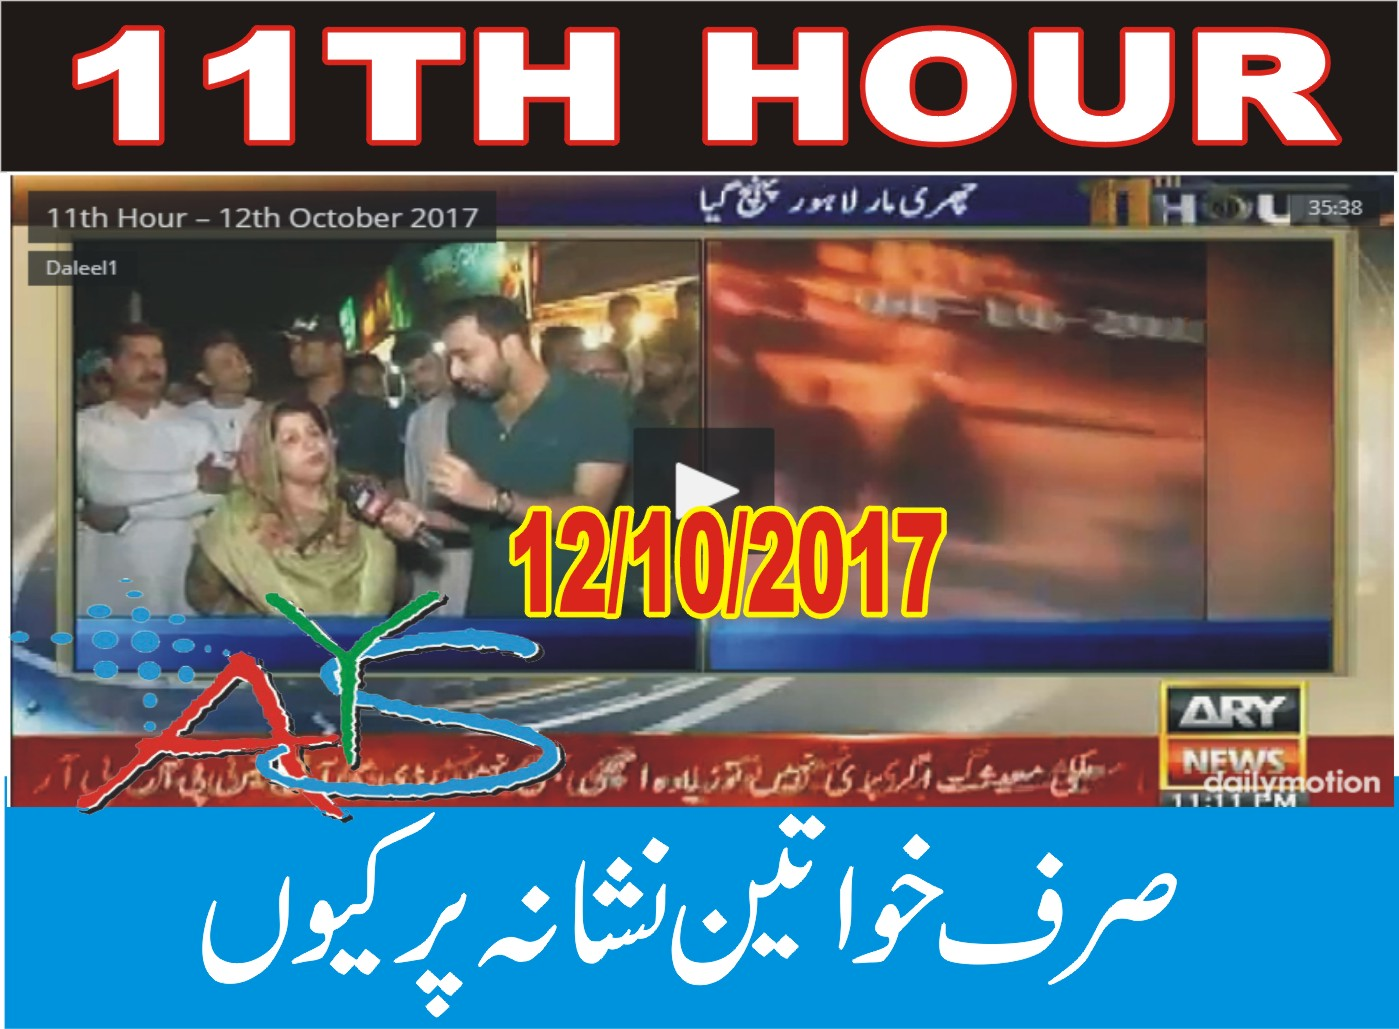 12 Oct 2017 - Chura Mar Group in Lahore